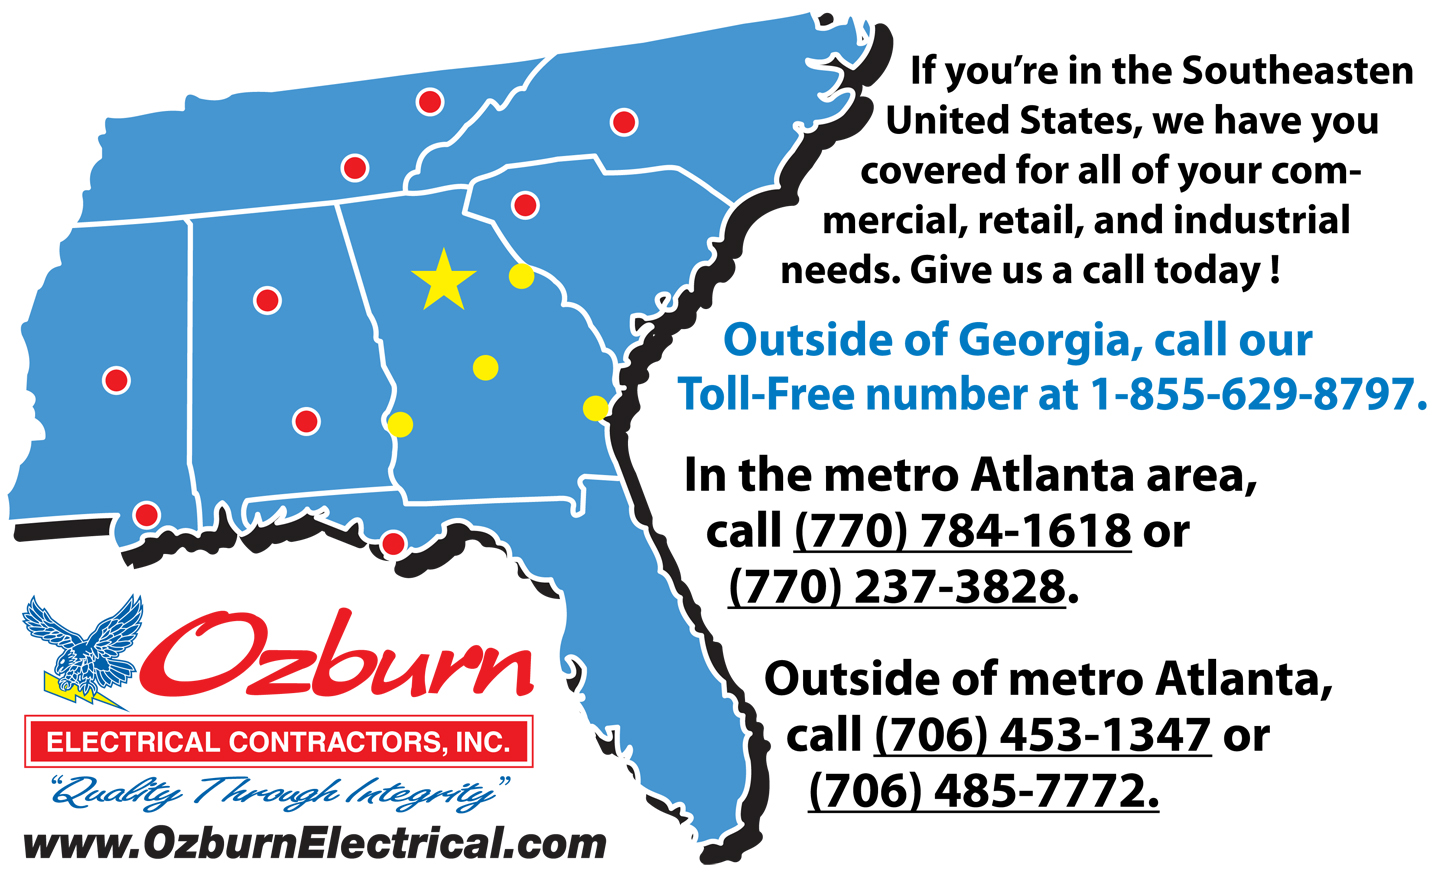 Ozburn Electric and Southern States